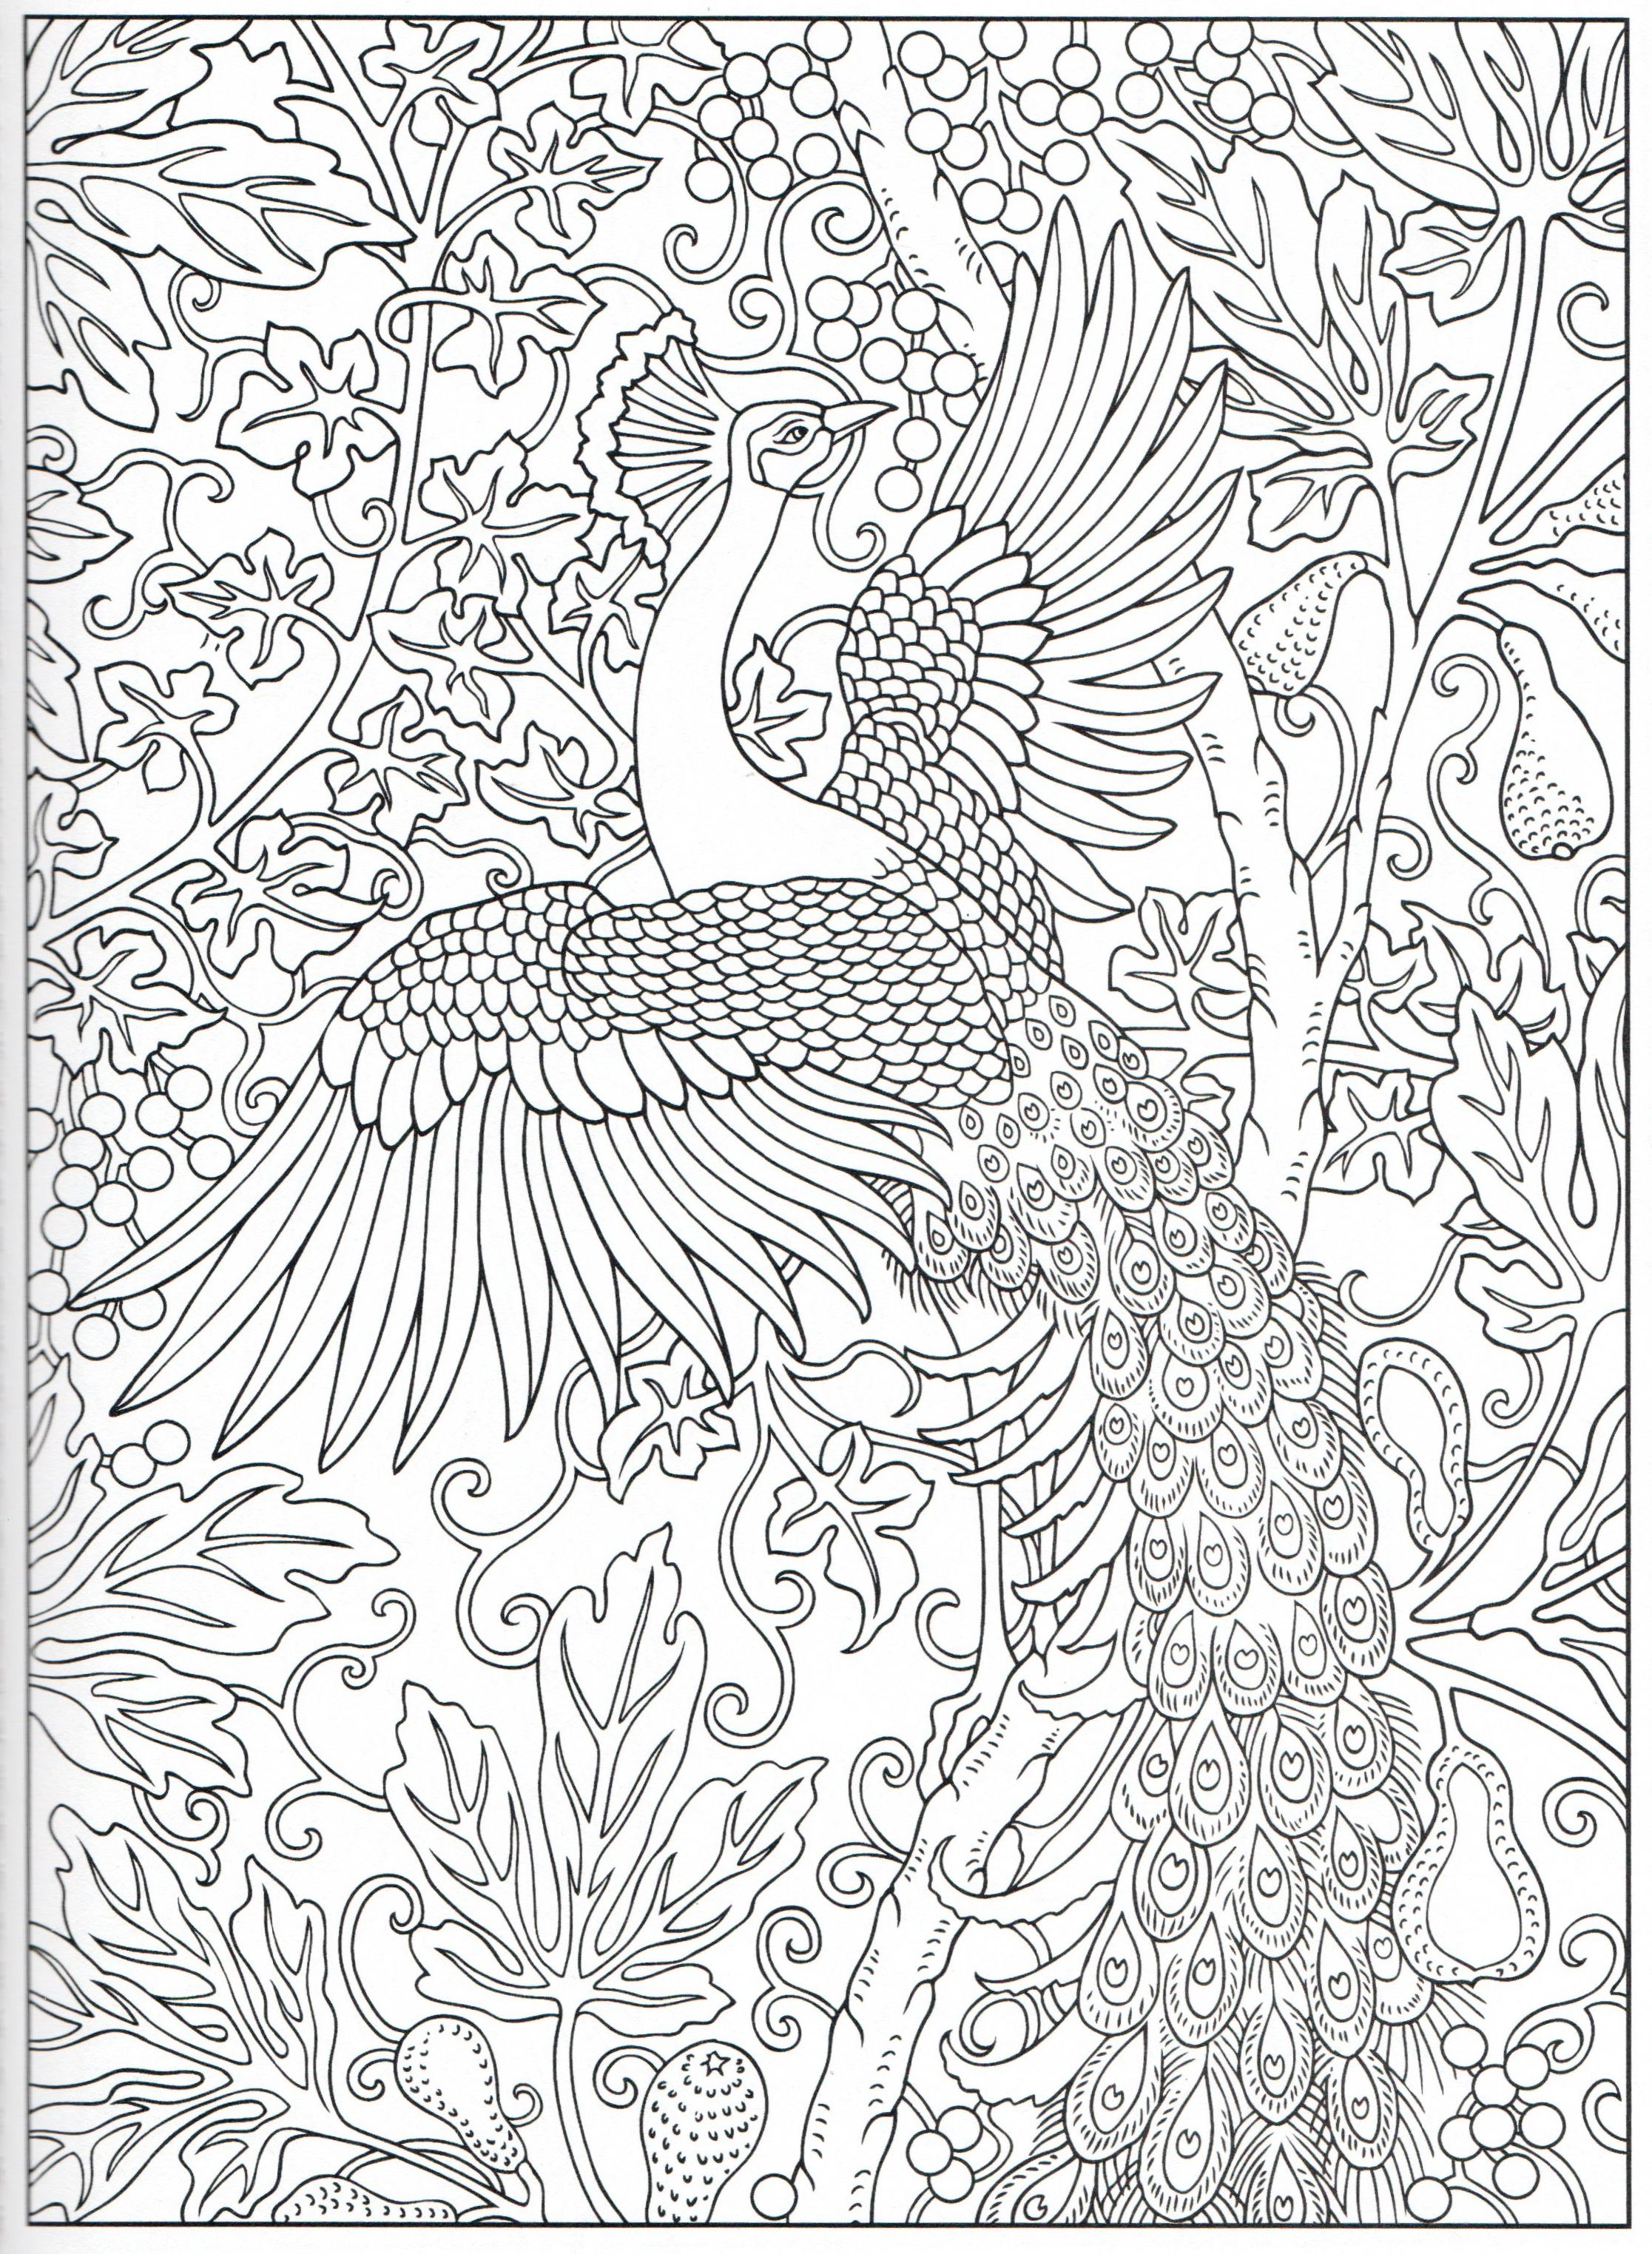 Peacock Coloring Page 15 31 Peacock Coloring Pages